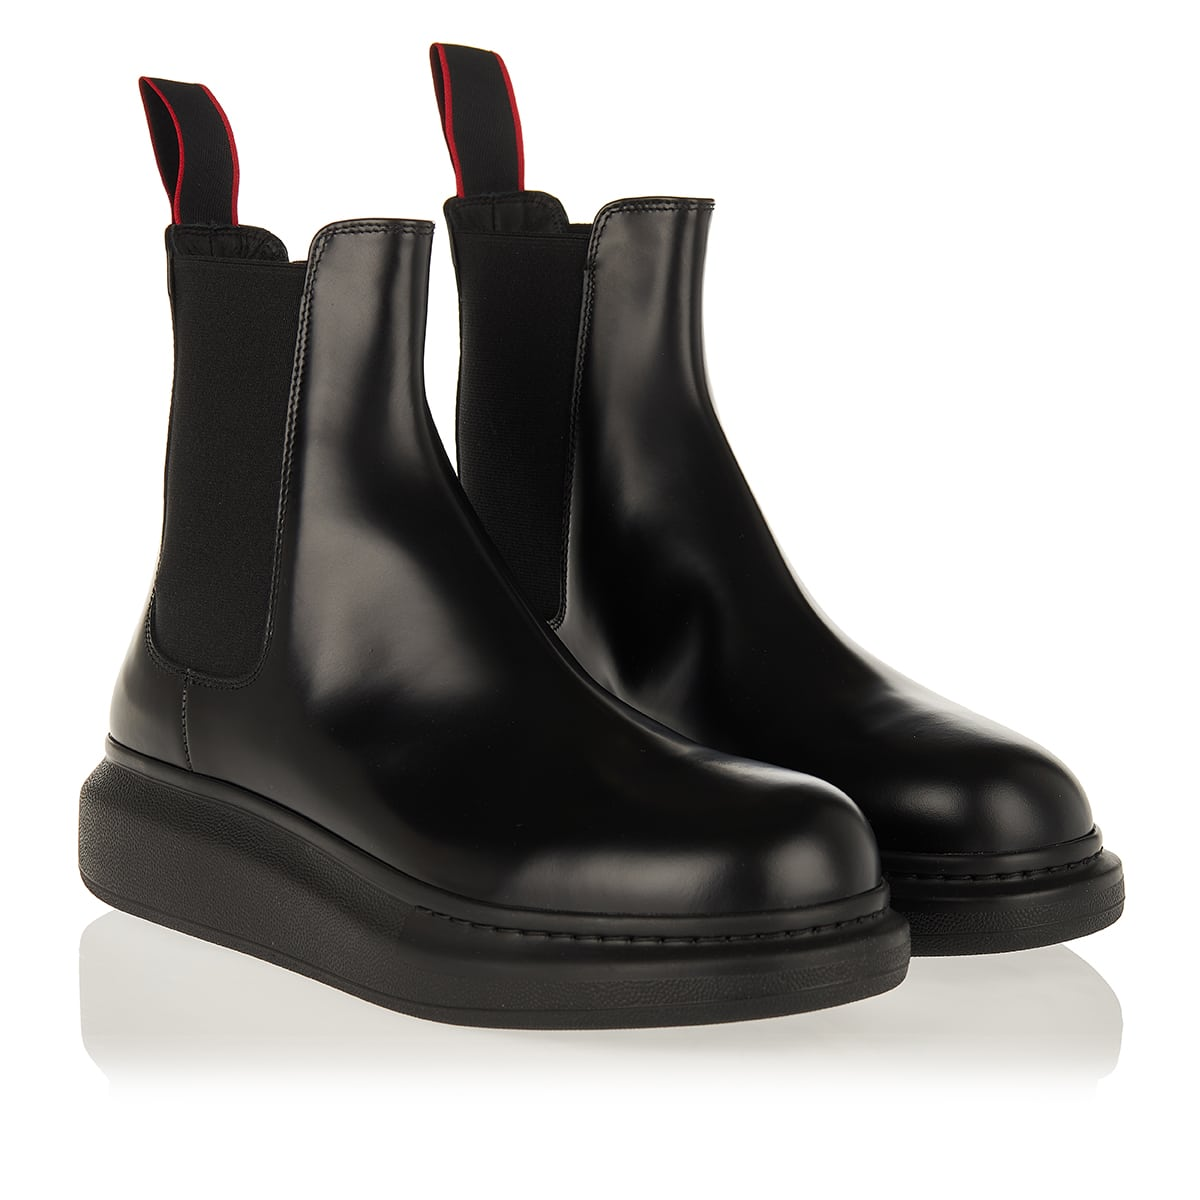 Oversized-sole leather Chelsea boots